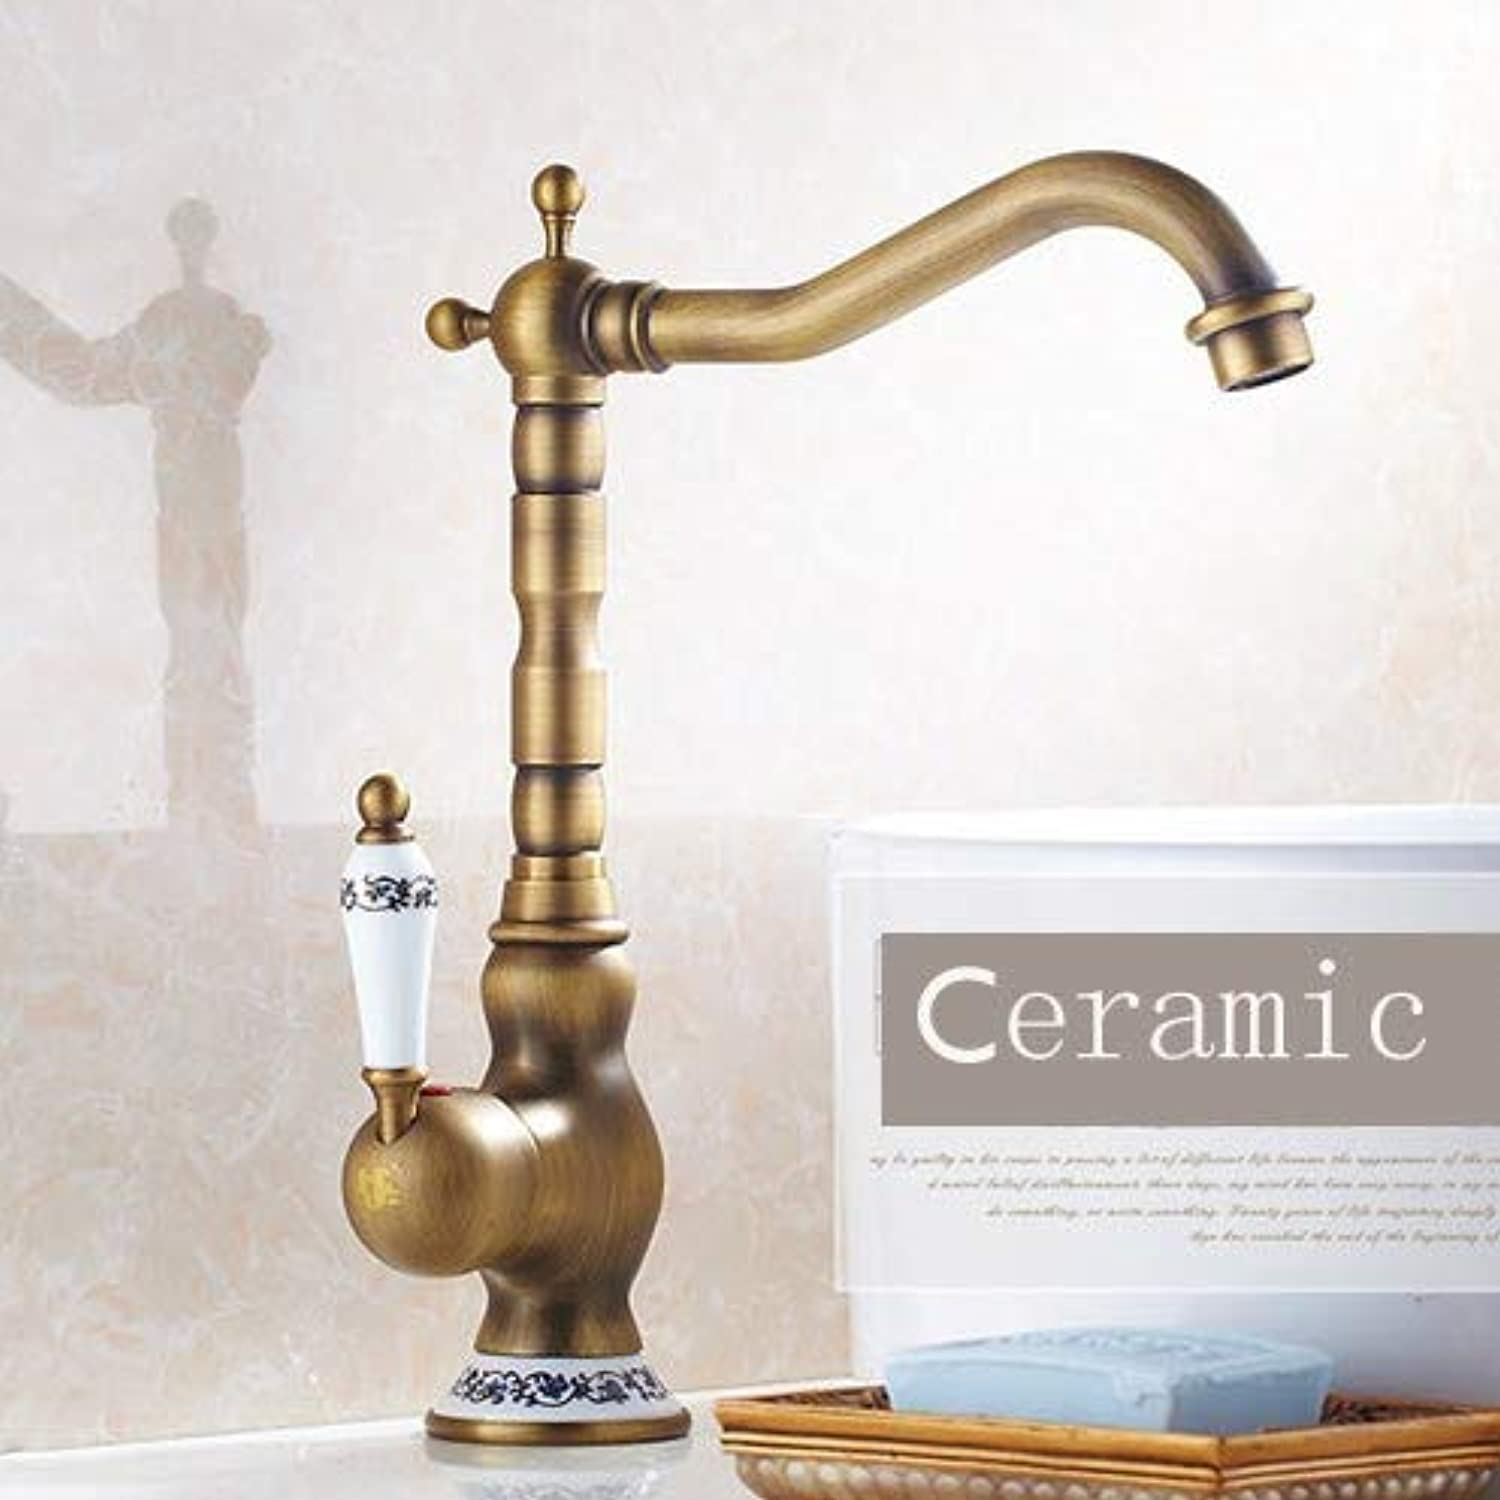 Antique Single Lever Mixer Tap for Kitchen Bathroom Brass Ceramic Cartridge Pivoting Pipe Spout Tap Single Hole Inssizetion 360° Swivelling